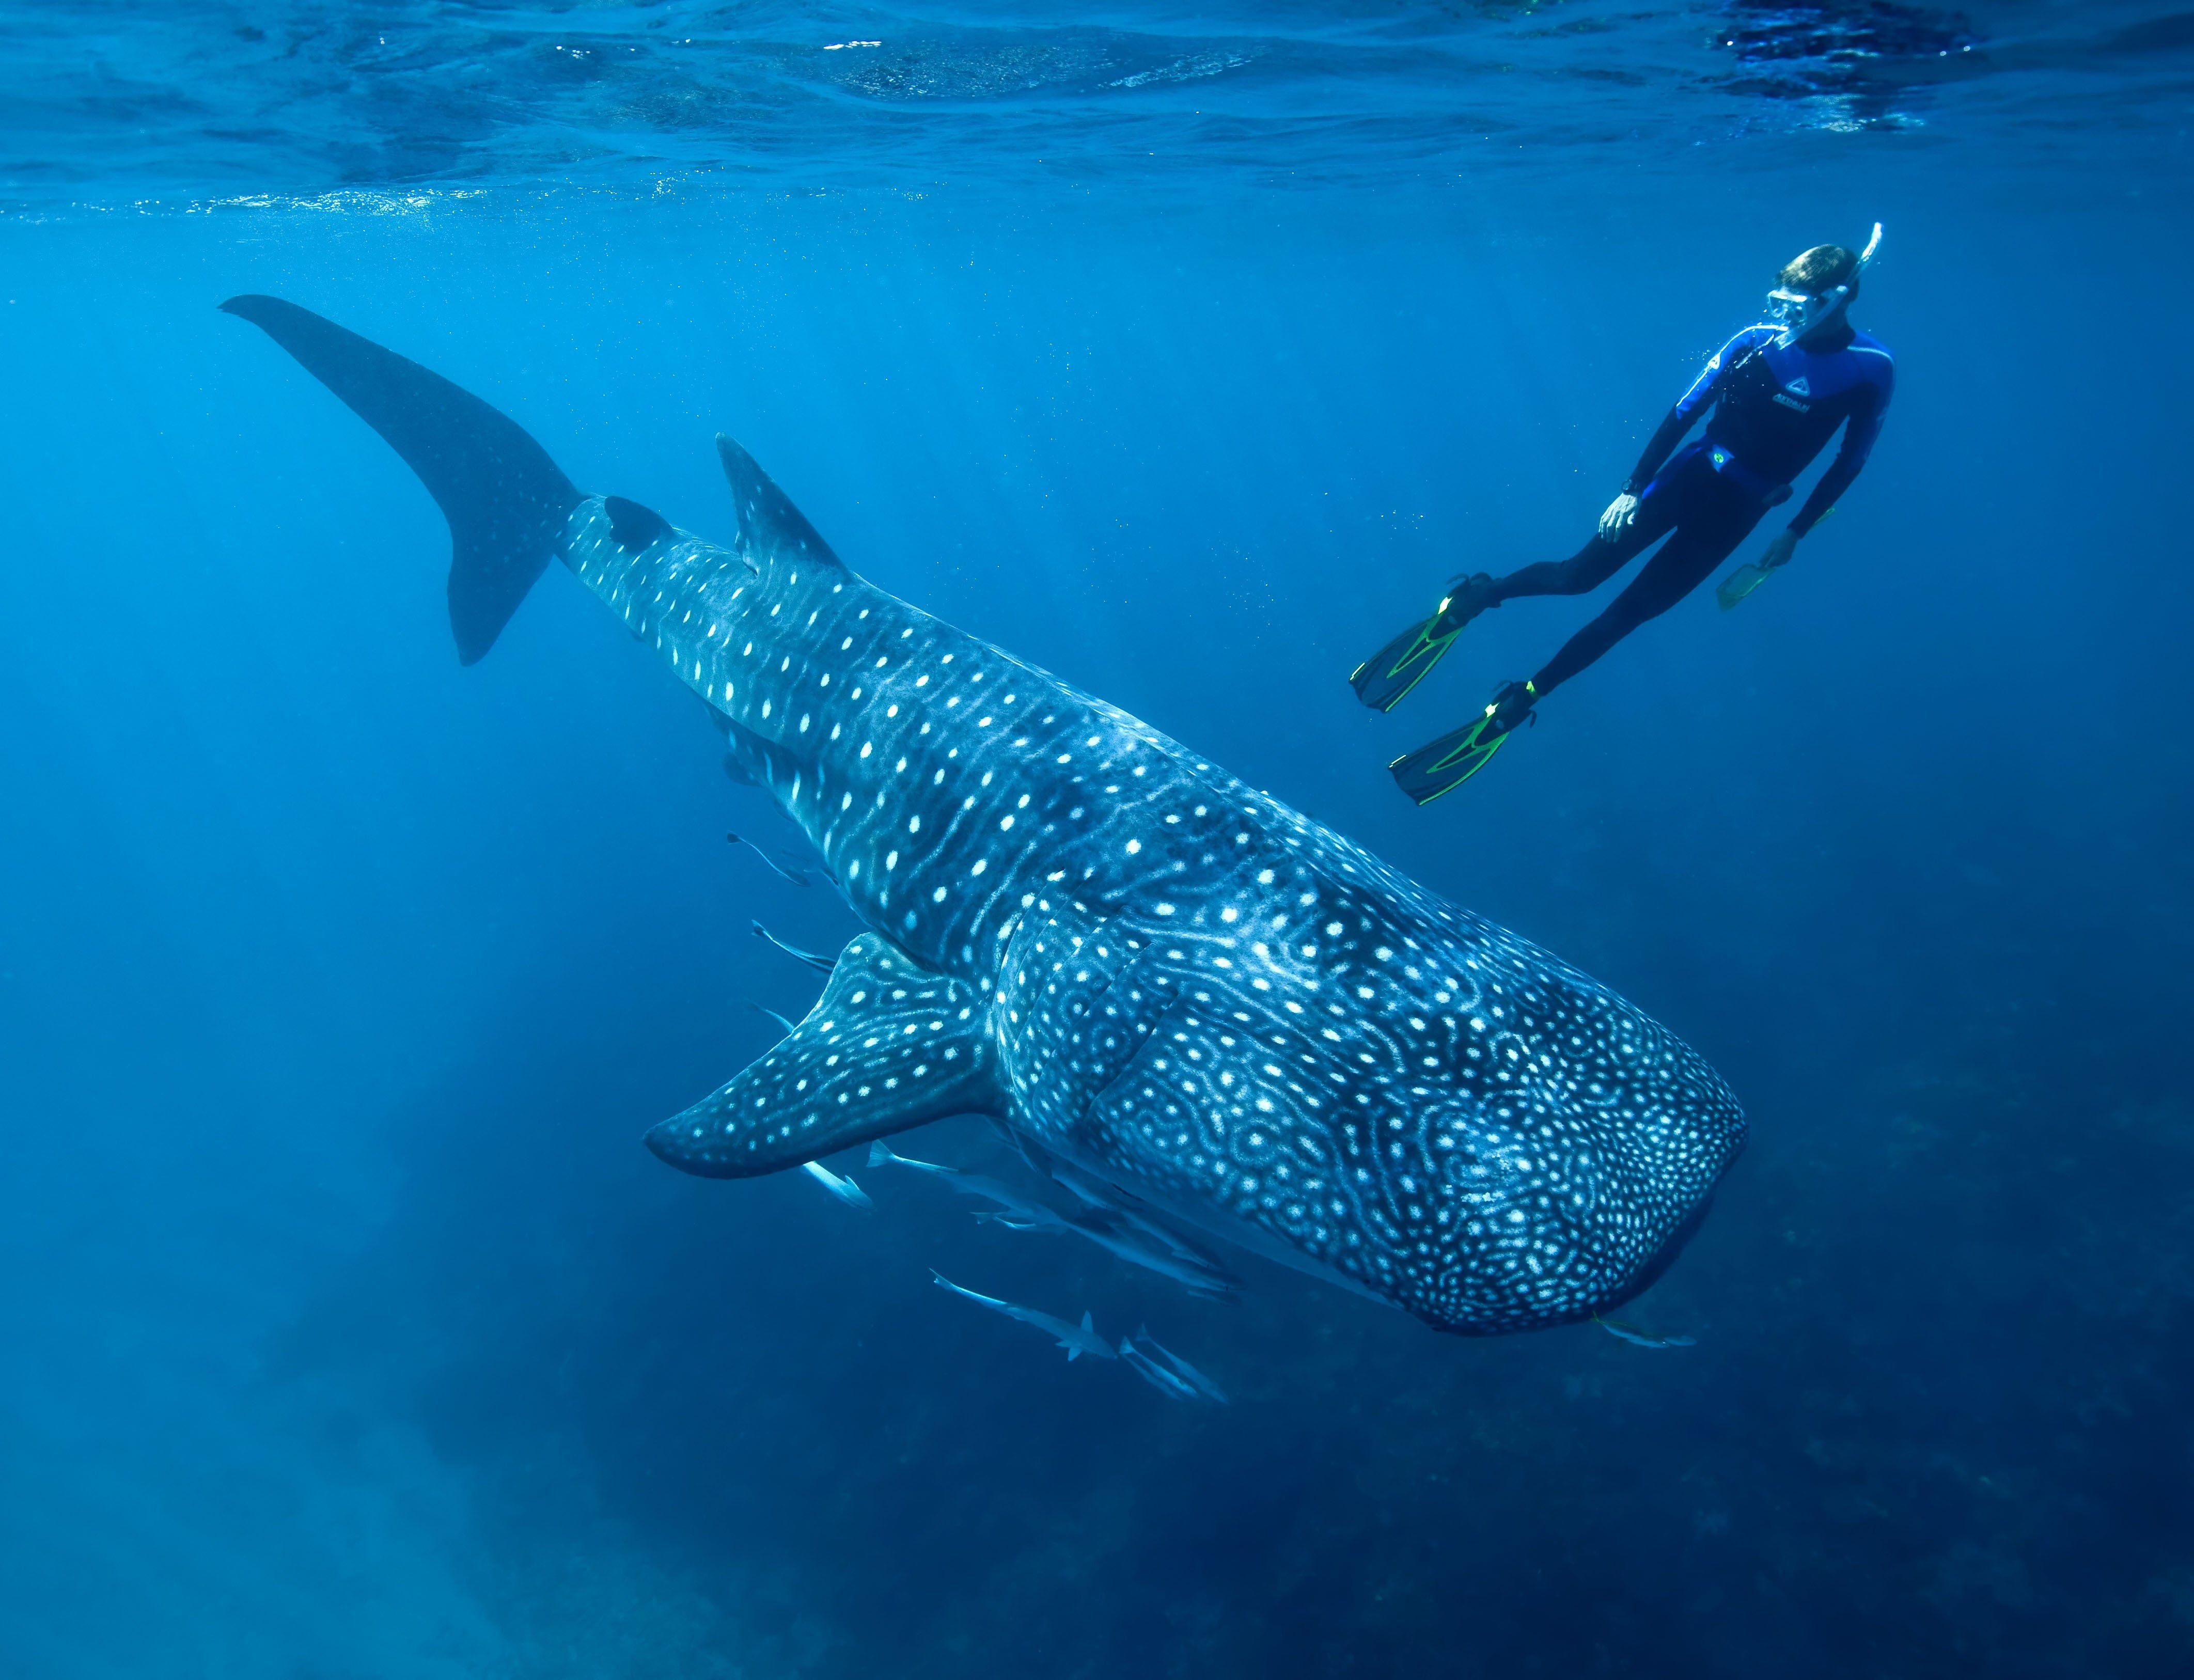 Whale shark underwater ocean sea wallpaper | 4248x3253 | 418148 ...